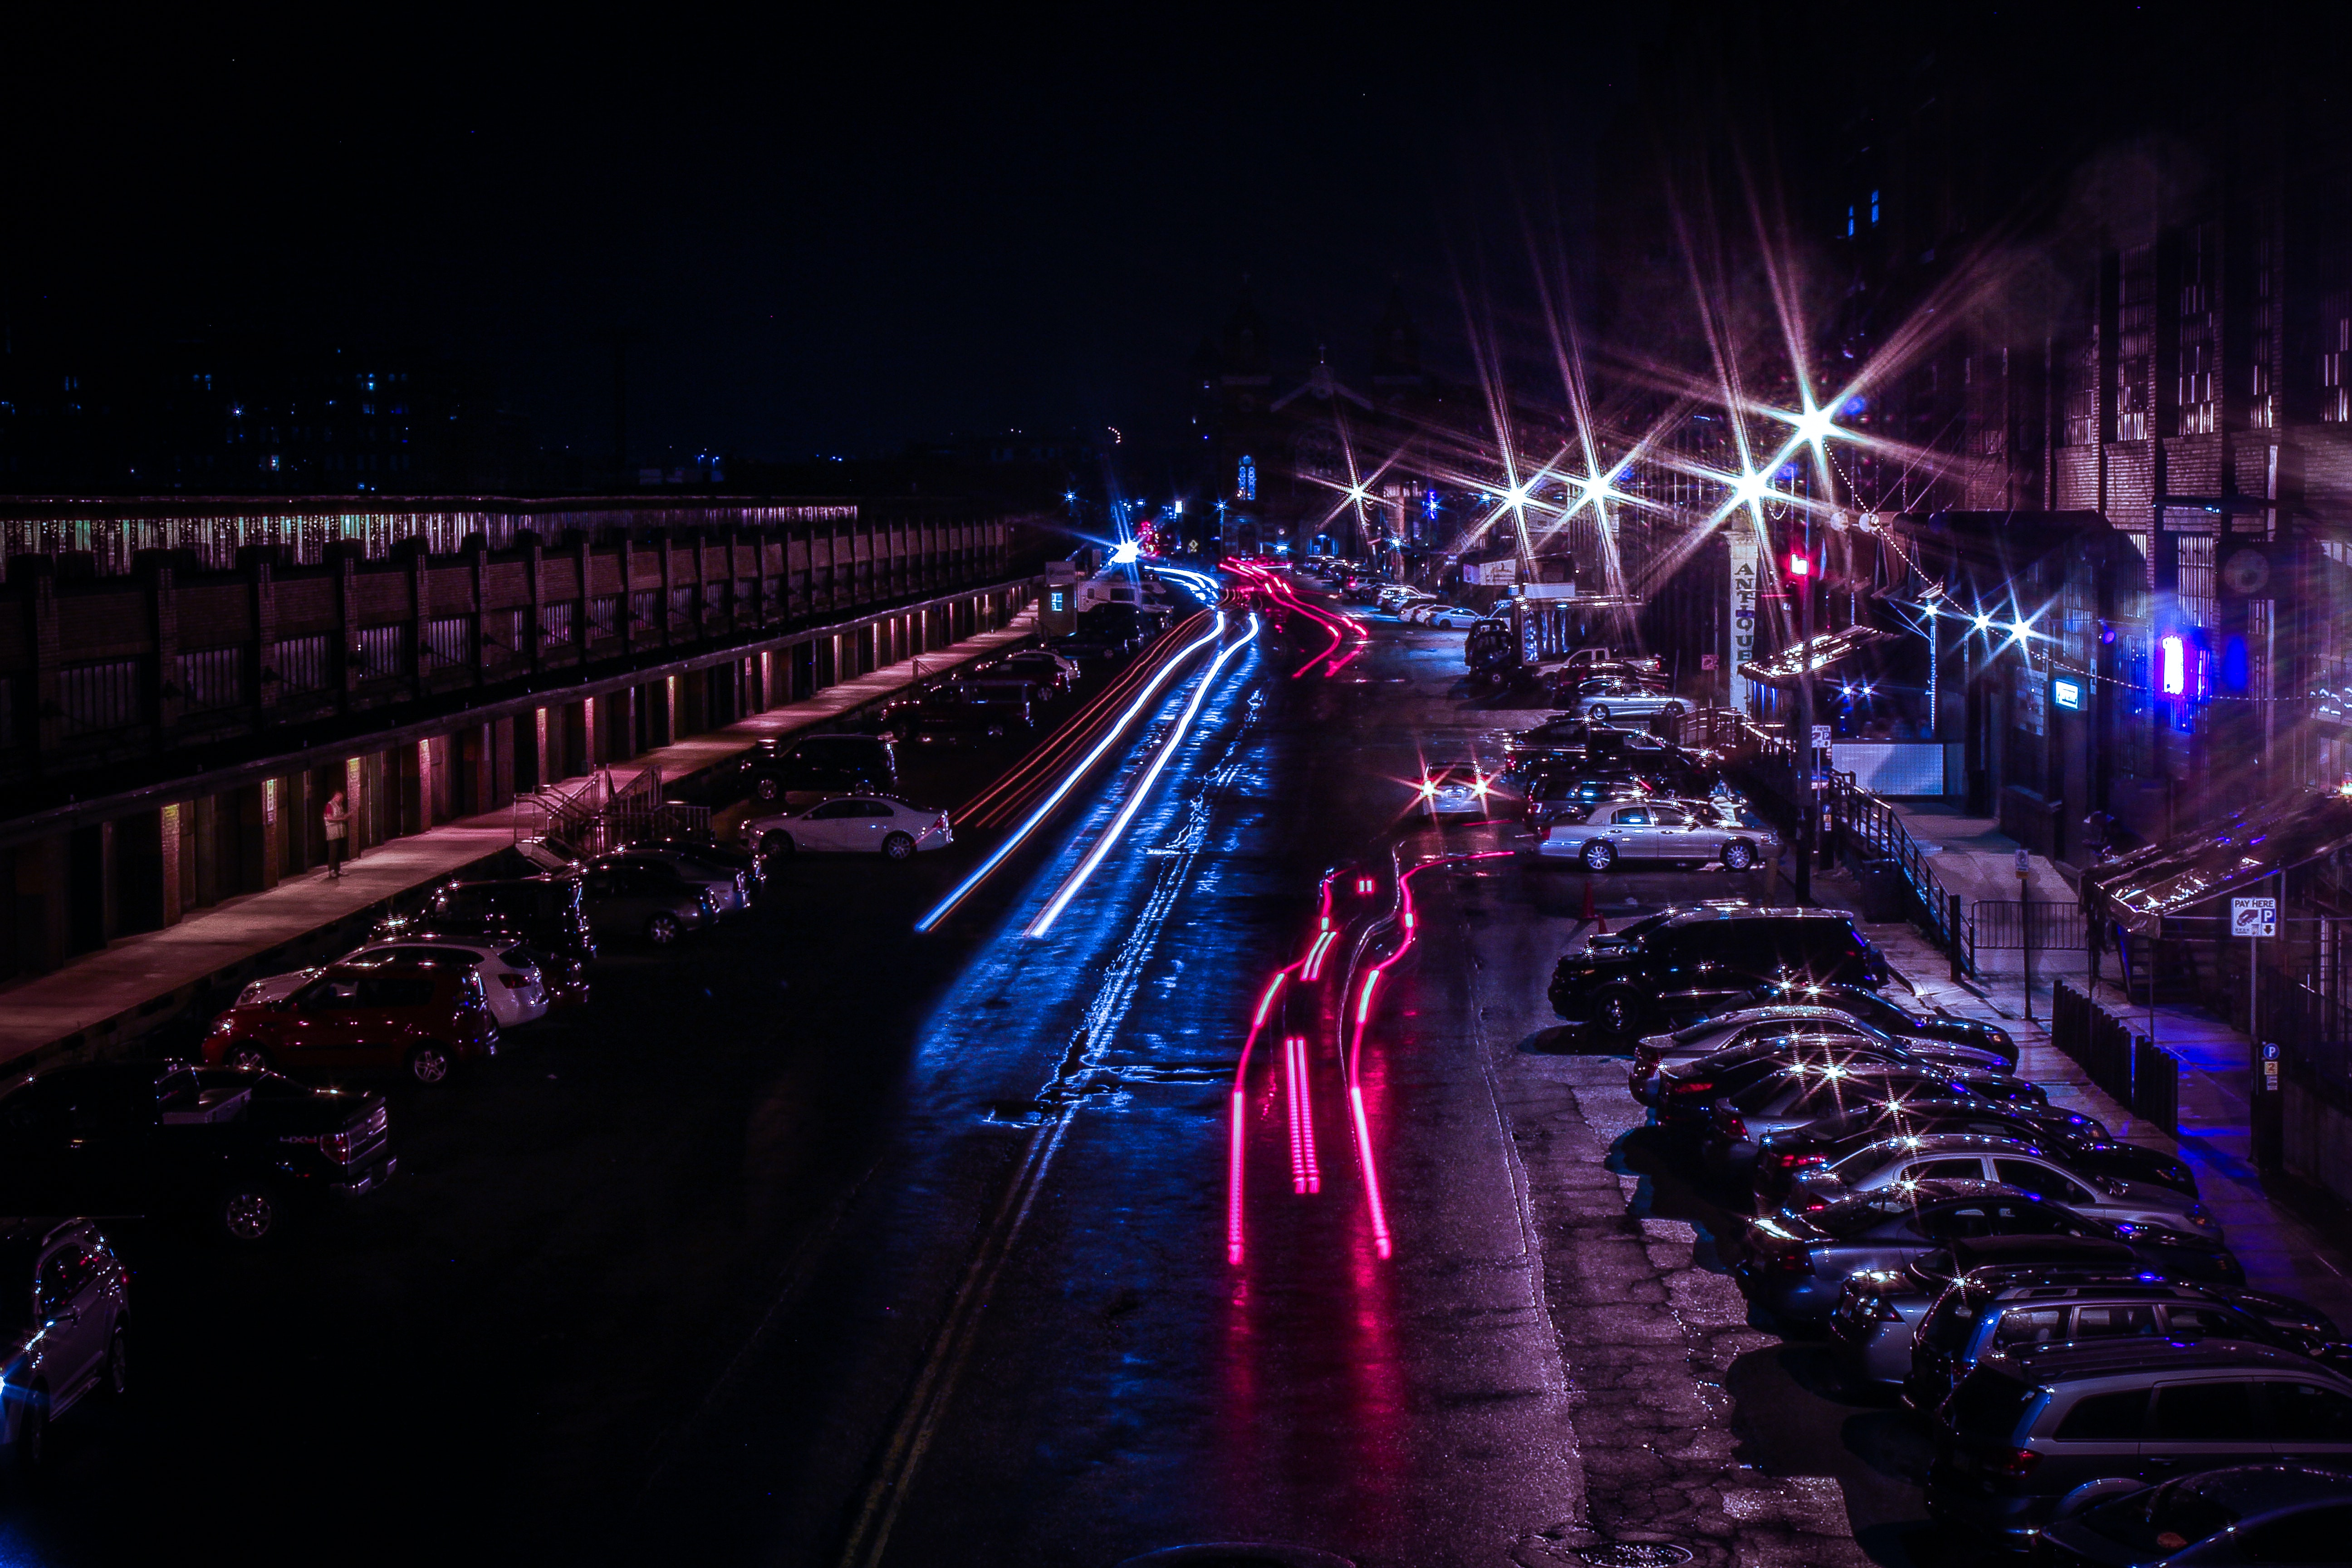 Light Reflecting from Wet Pavement · Free Stock Photo